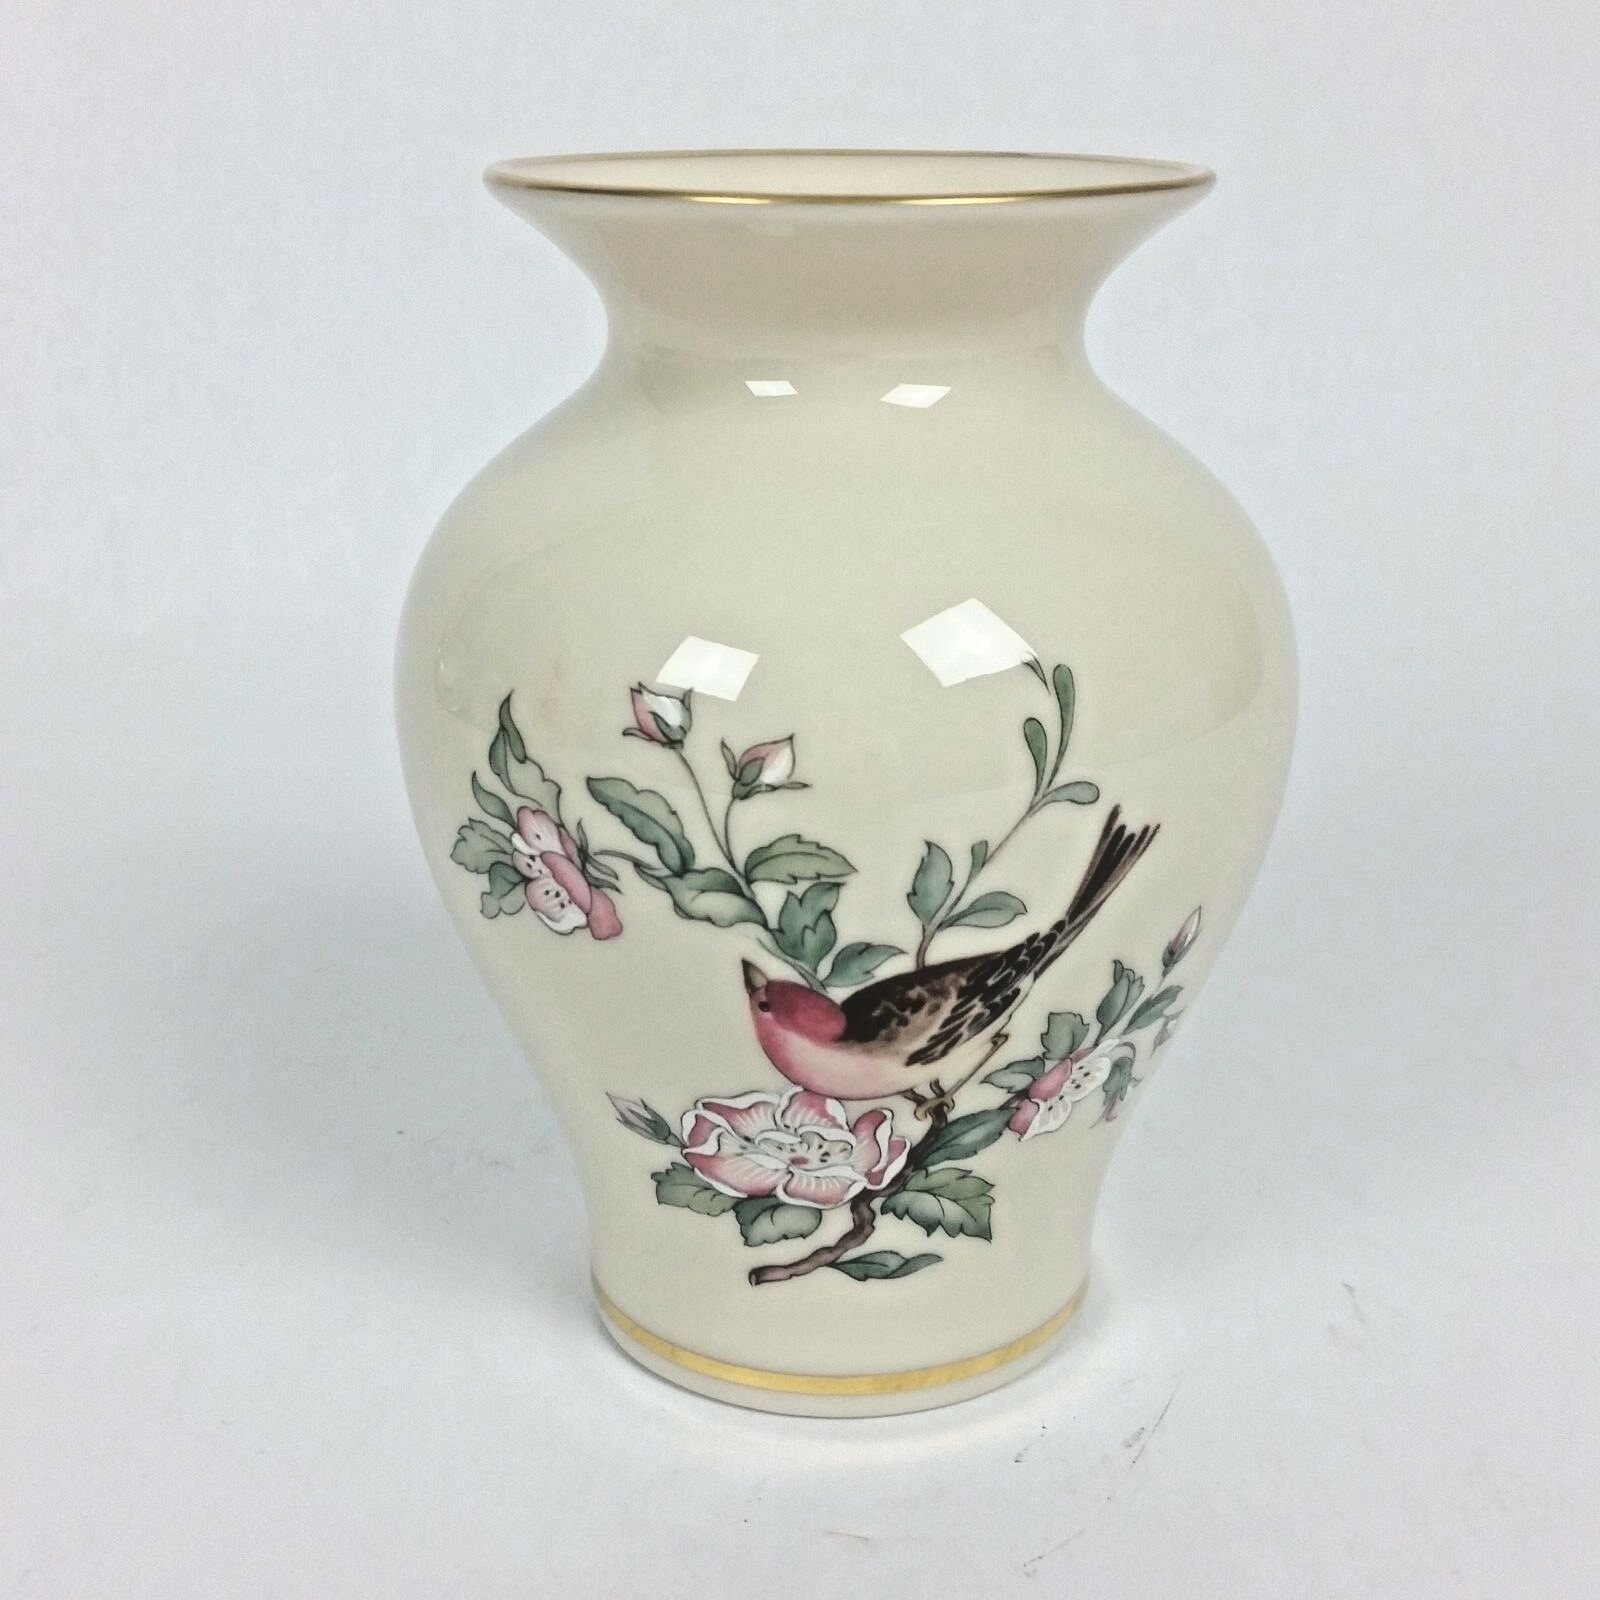 Lenox Porcelain China Serenade Floral Birds Bud Vase 24k Gold Rim 6""